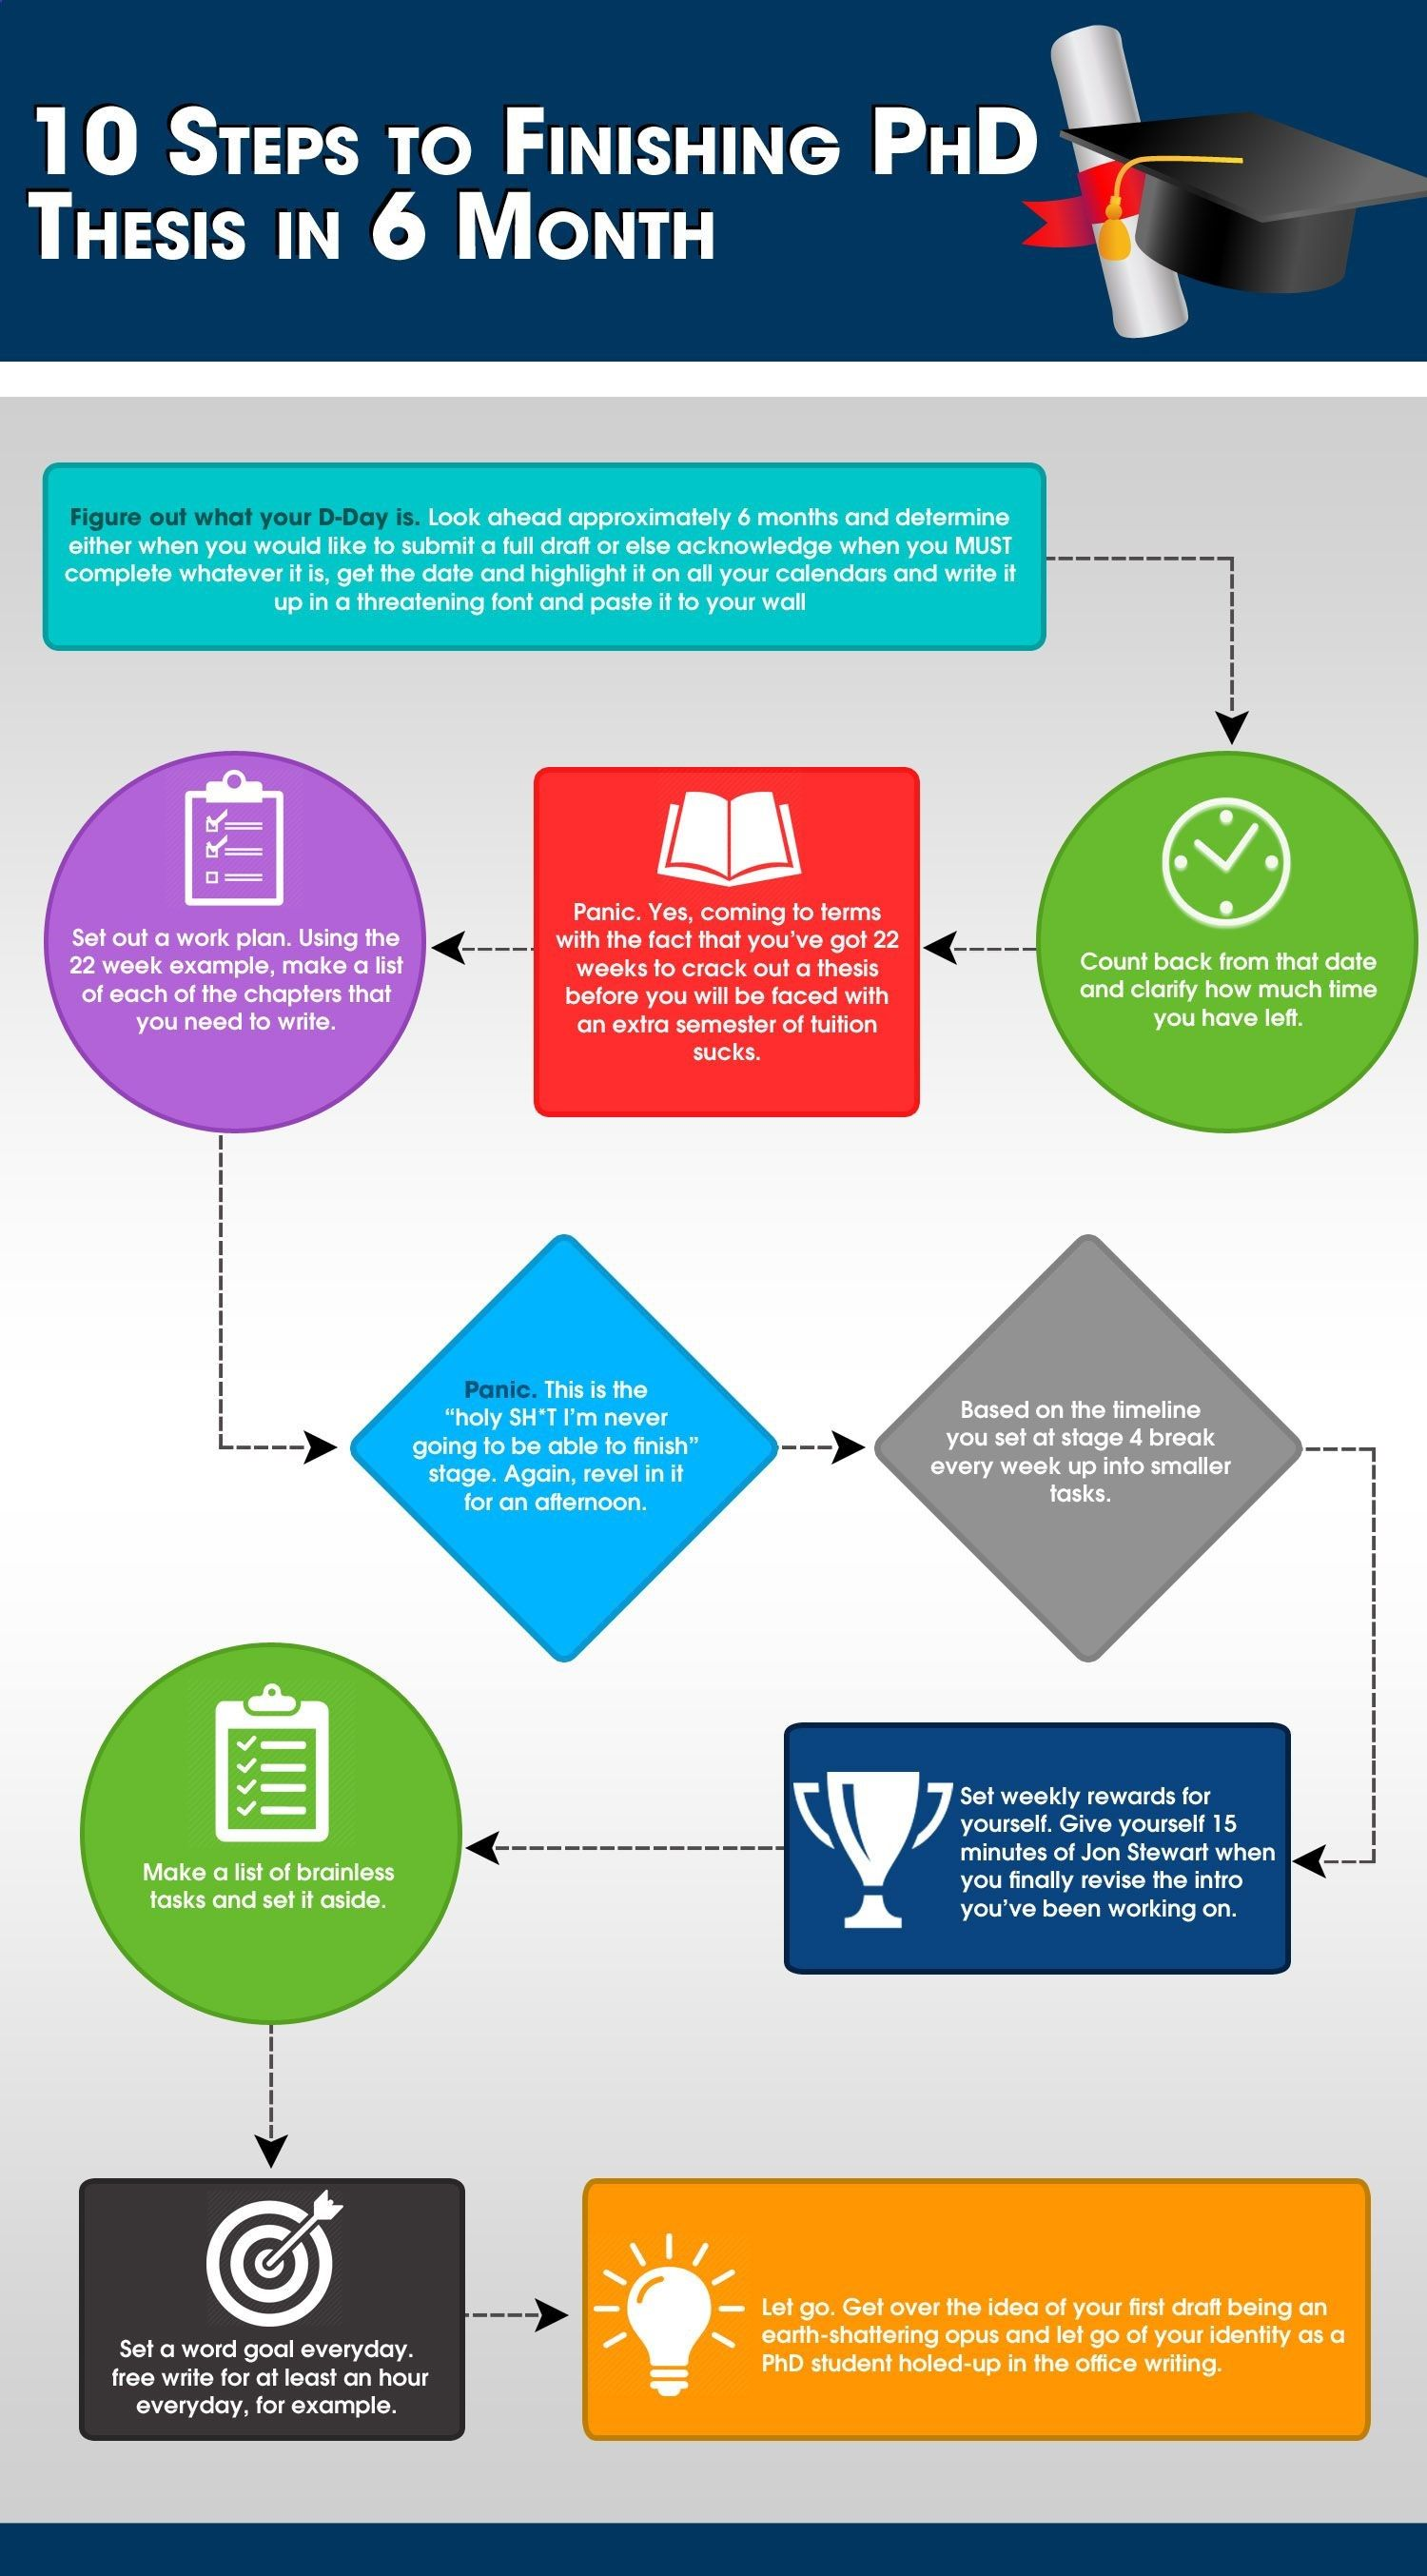 Phdify Com Infographic From High Quality Phd Thesi Writing Service Help You Finish In 6 Dissertation Life On Management